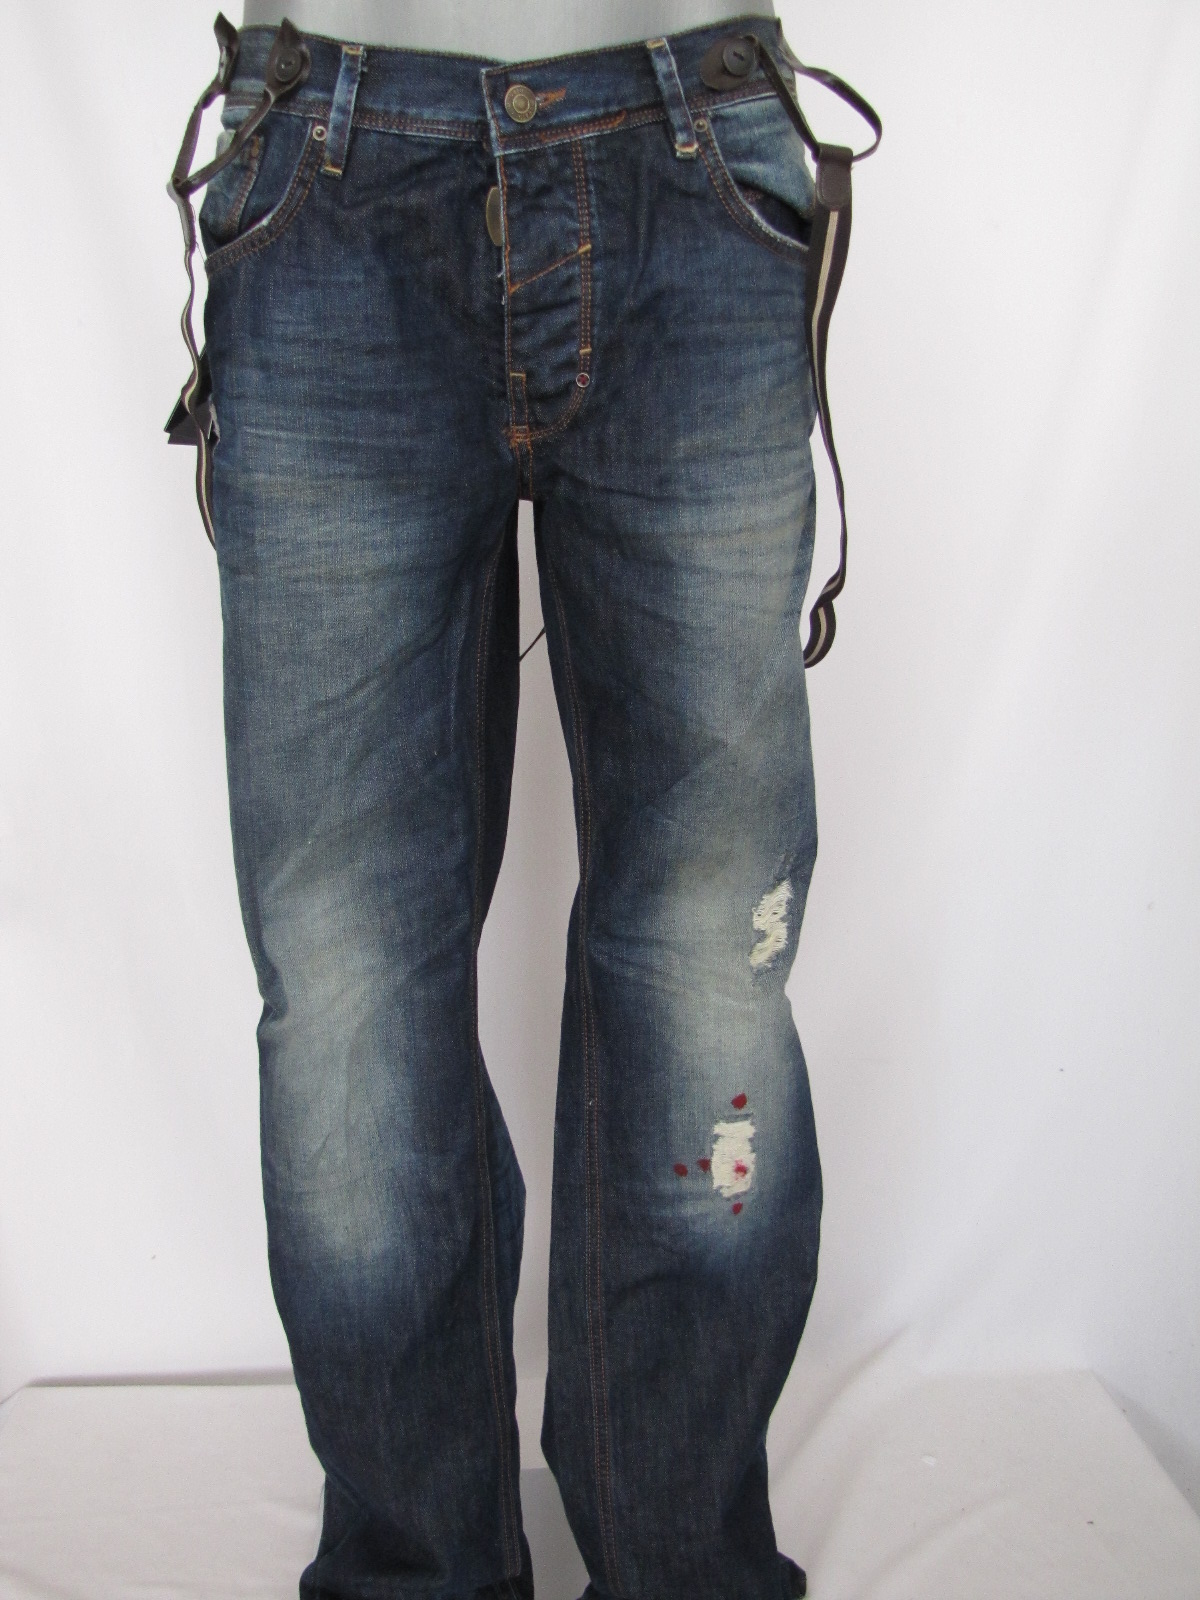 antony morato mp2266 hosentr ger herren jeans blau w38 ebay. Black Bedroom Furniture Sets. Home Design Ideas